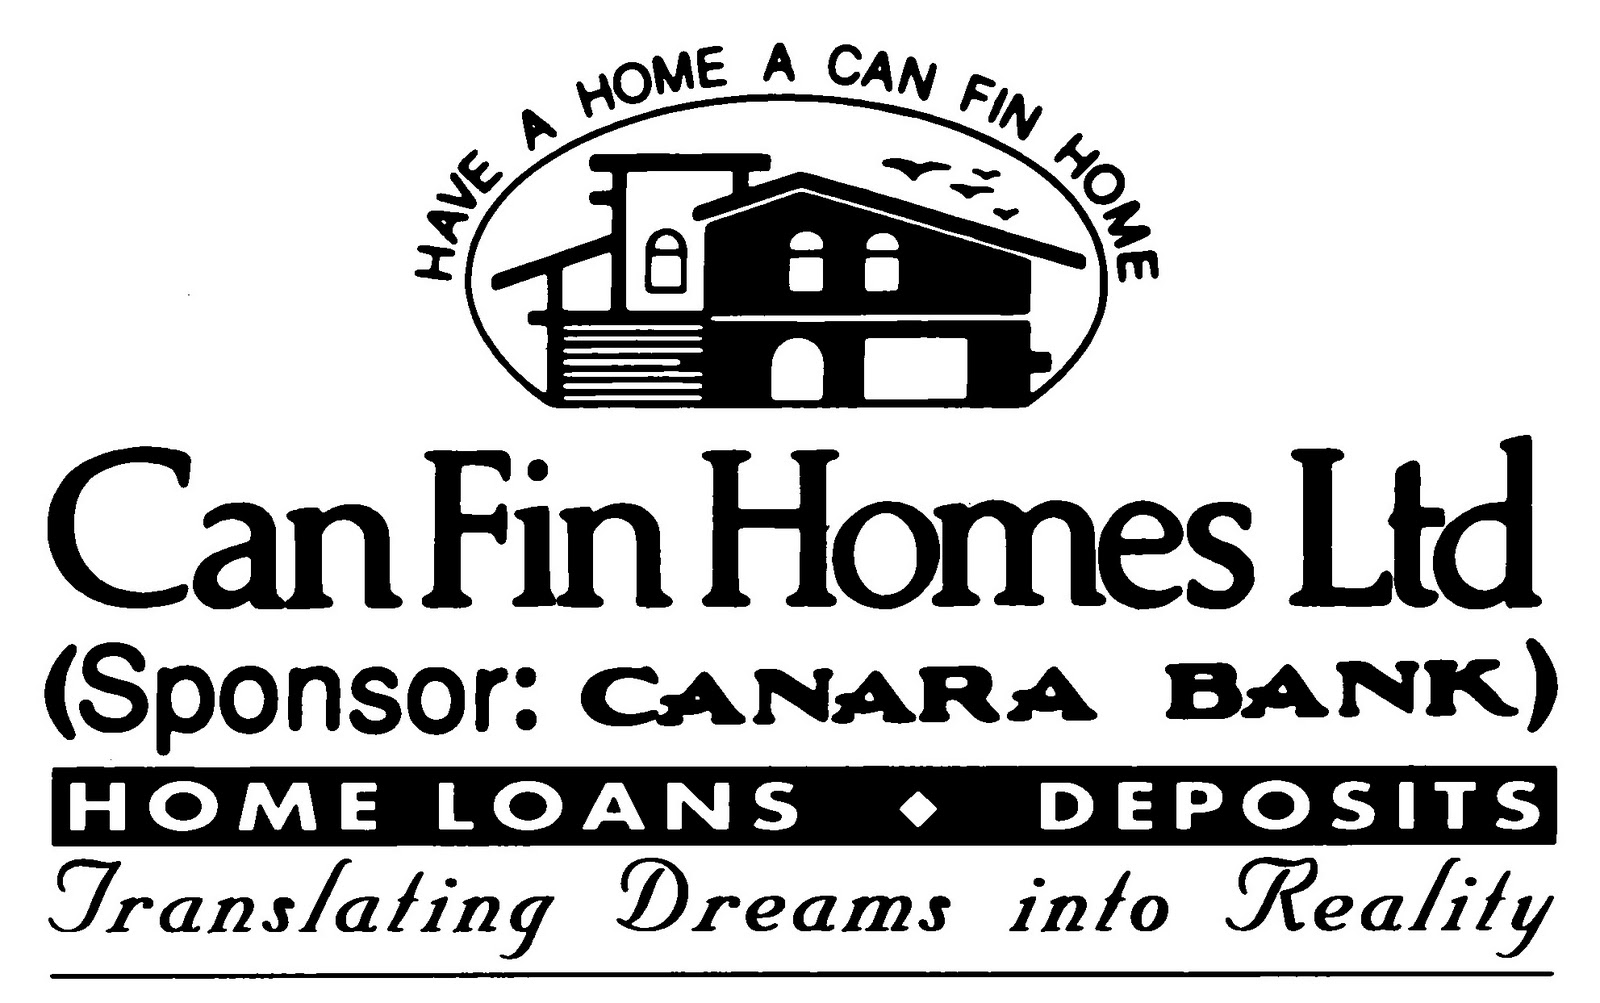 CAN FIN HOMES LTD Reviews, Employer Reviews, Careers, Recruitment ...